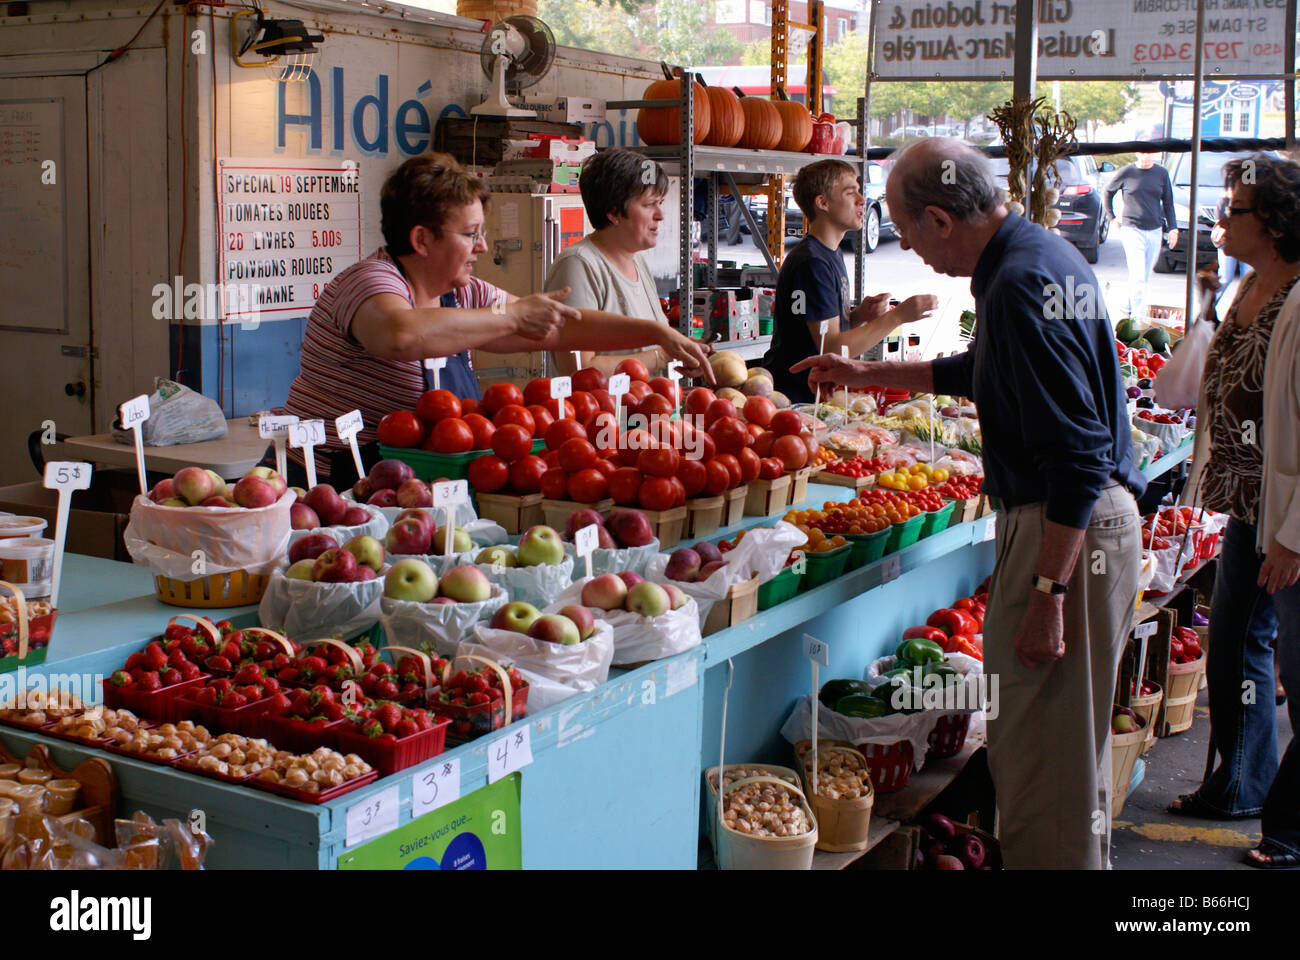 people-shopping-at-a-fruit-and-vegetable